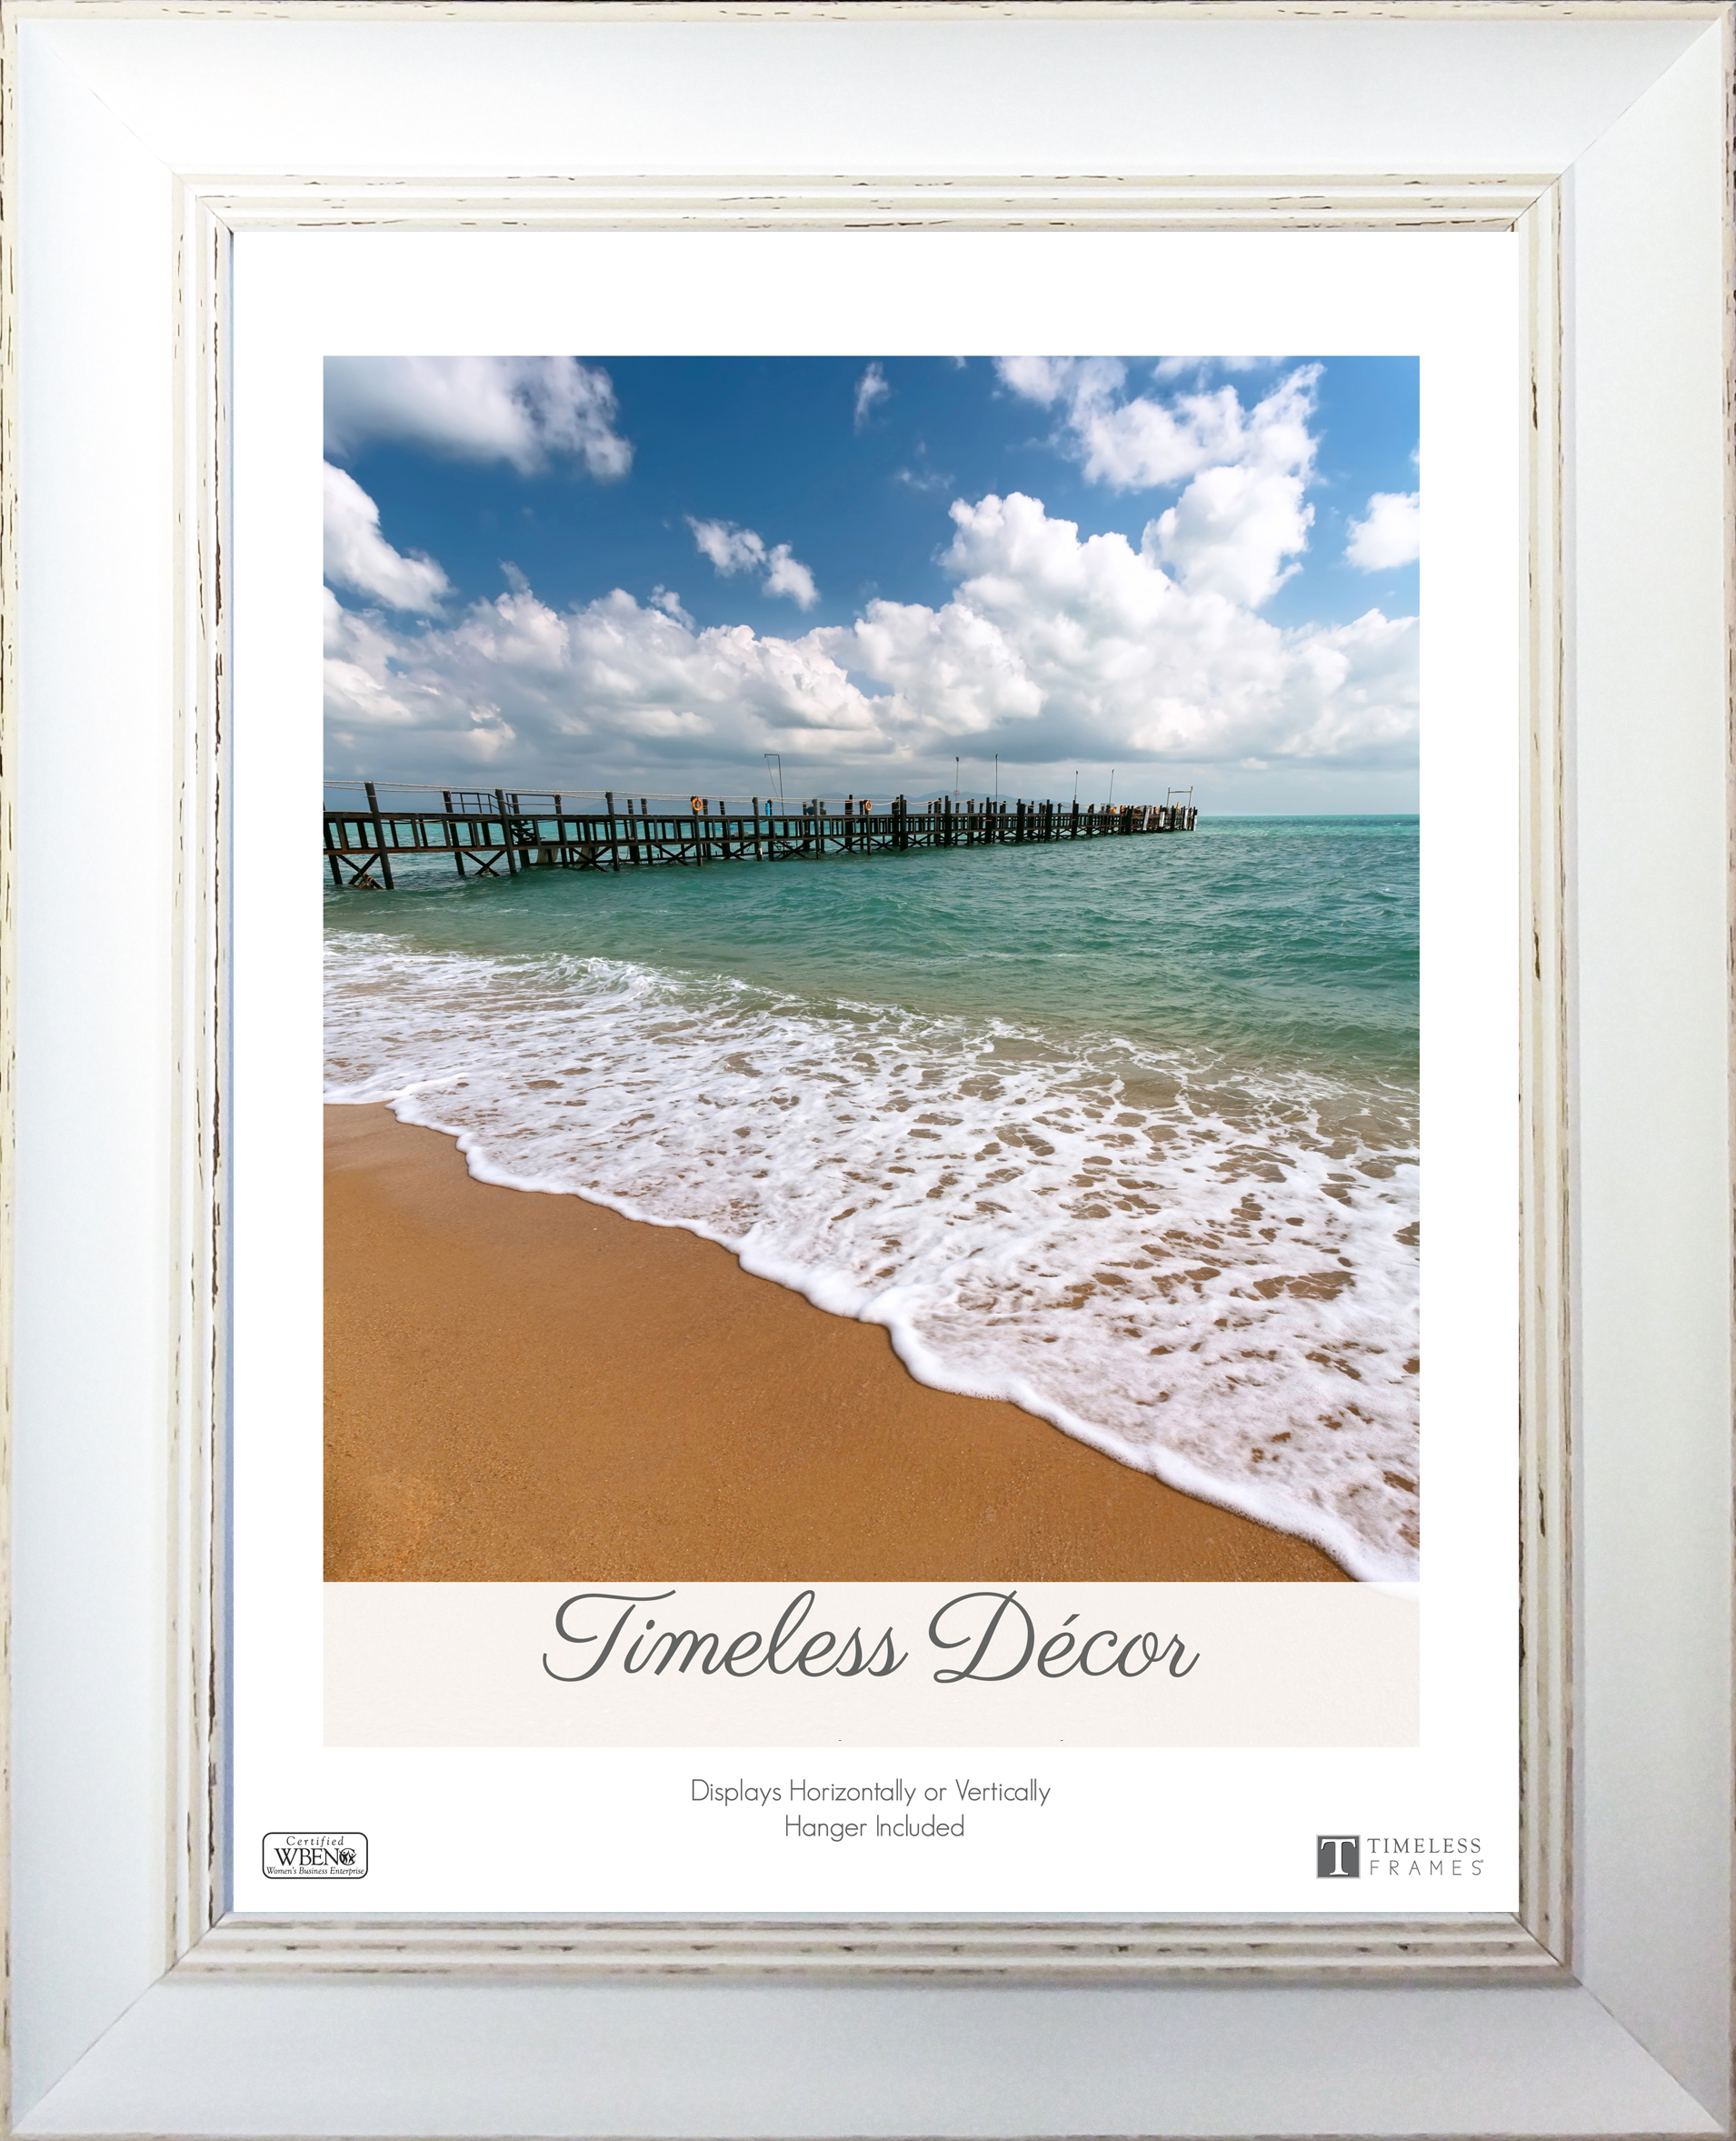 View - Della- 10x13 - Wall | Timeless Frames